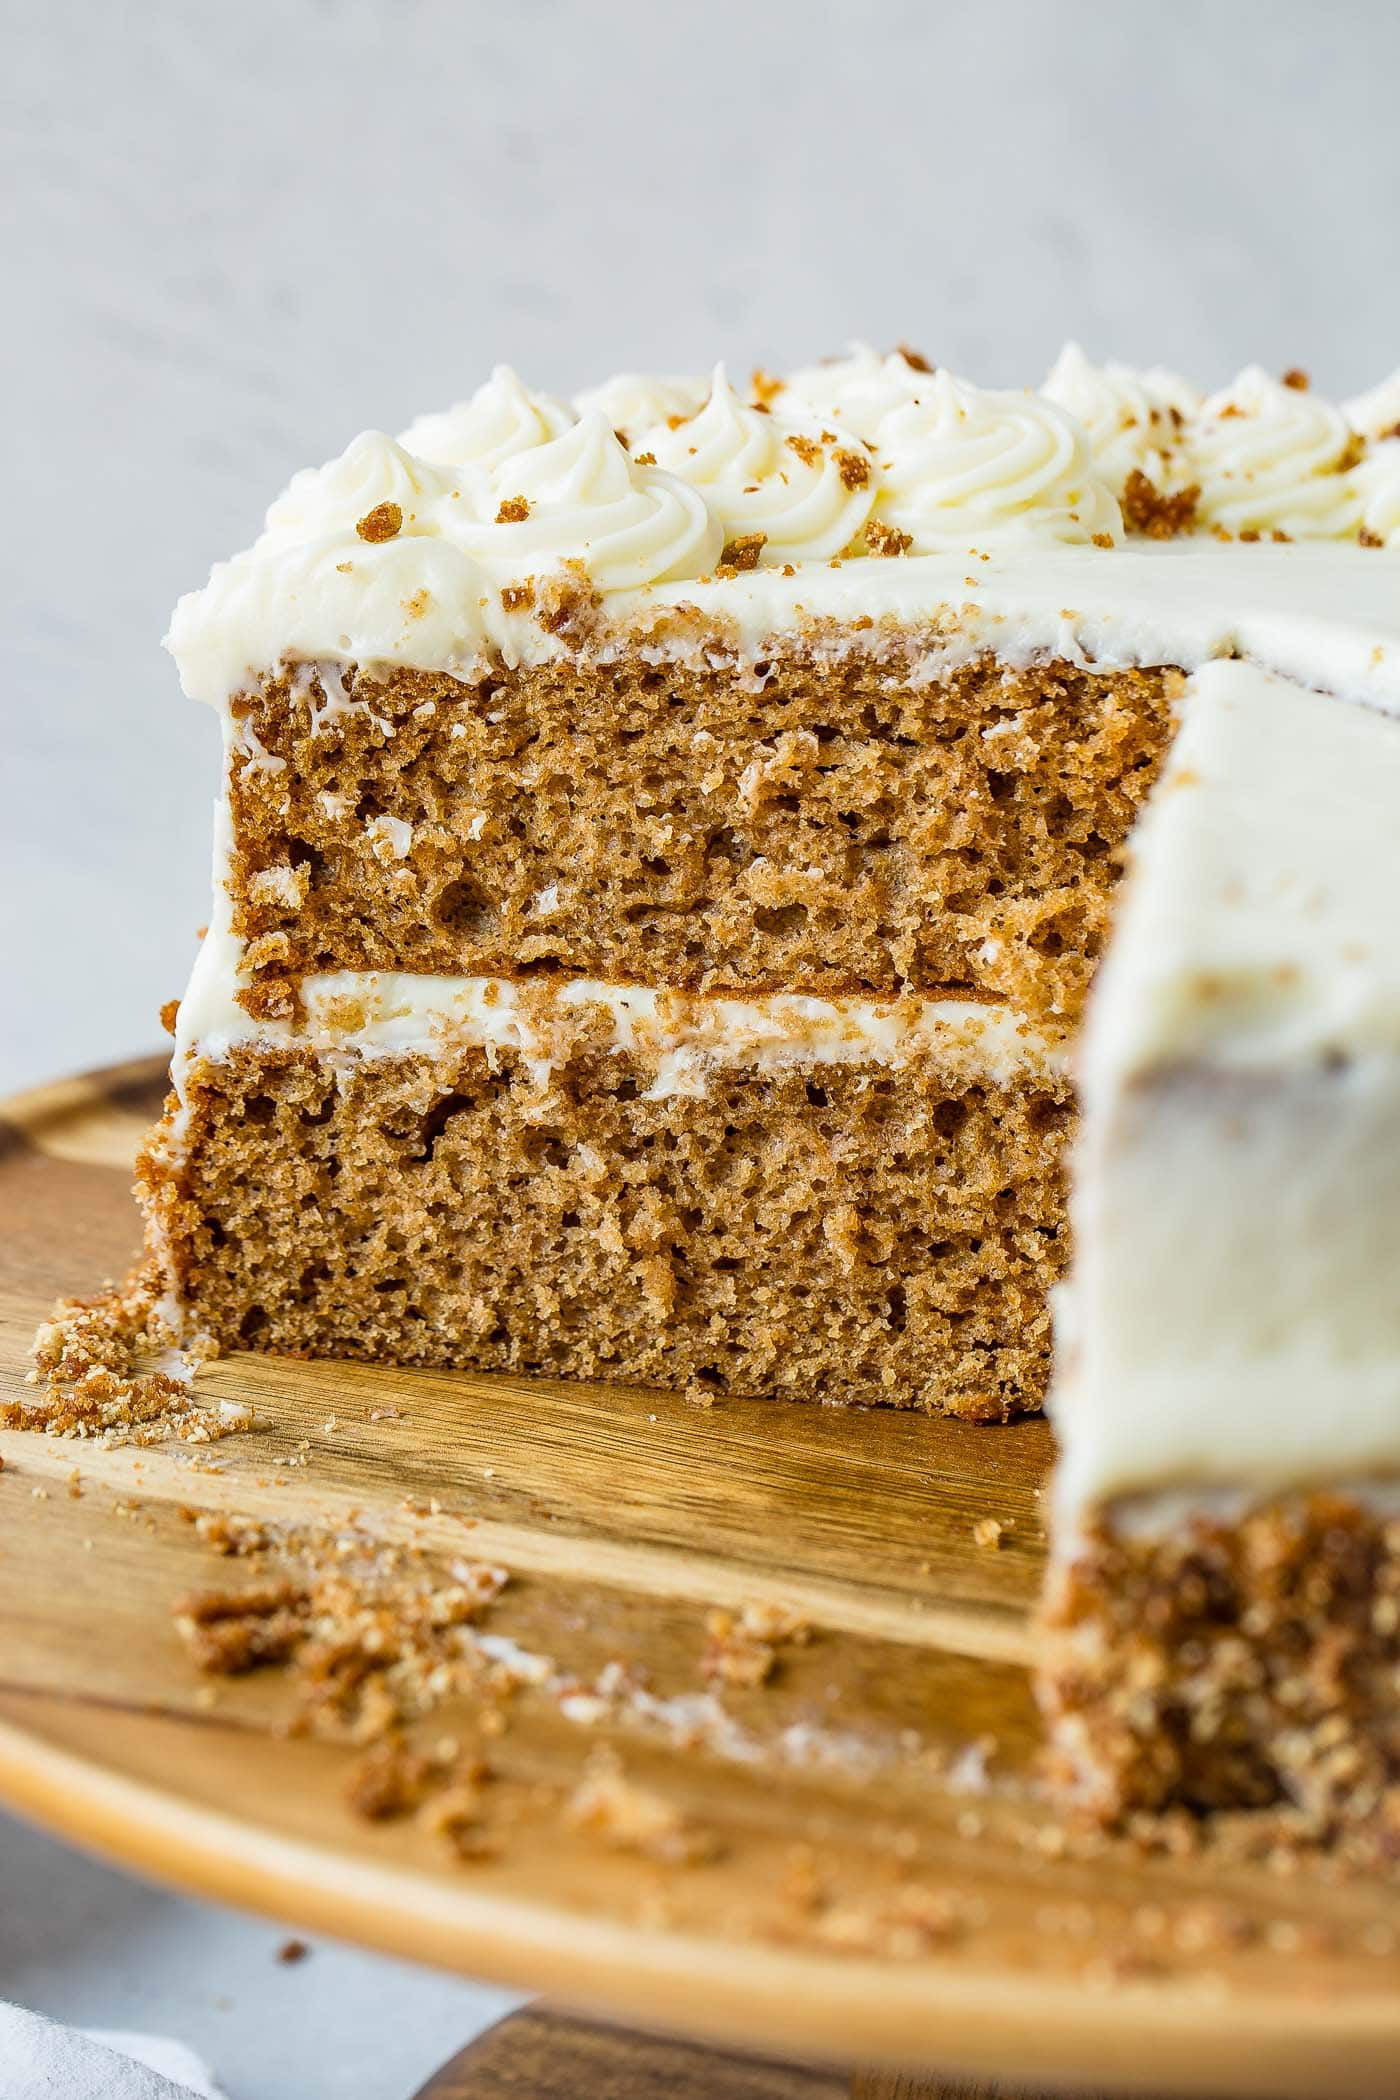 A two layer cake with whipped cream between layers and on top. A slice has been cut out of the cake.